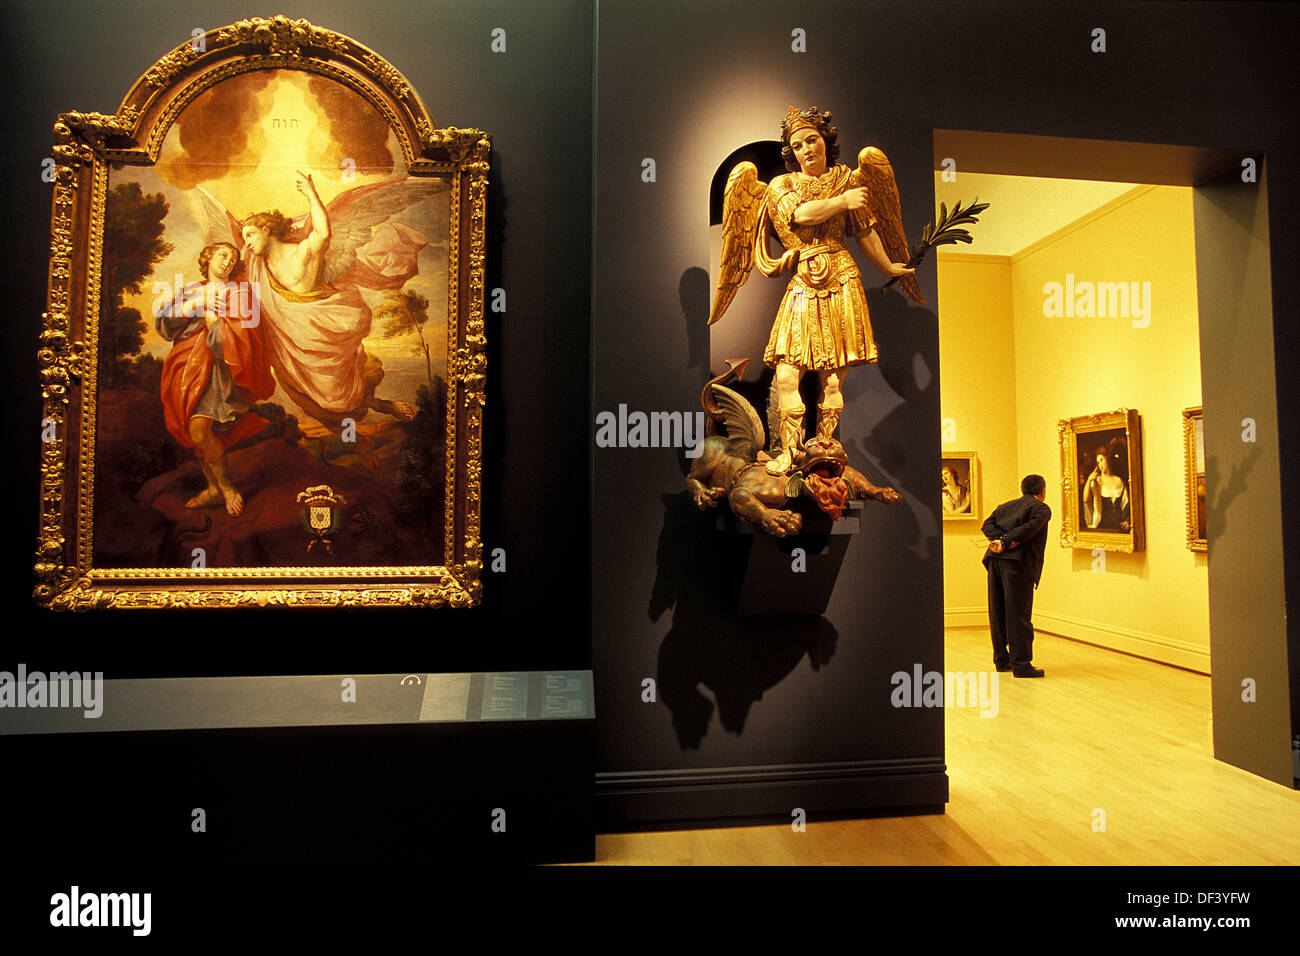 National Museum of Fine Arts of Quebec, Quebec City, Quebec, Canada - Stock Image